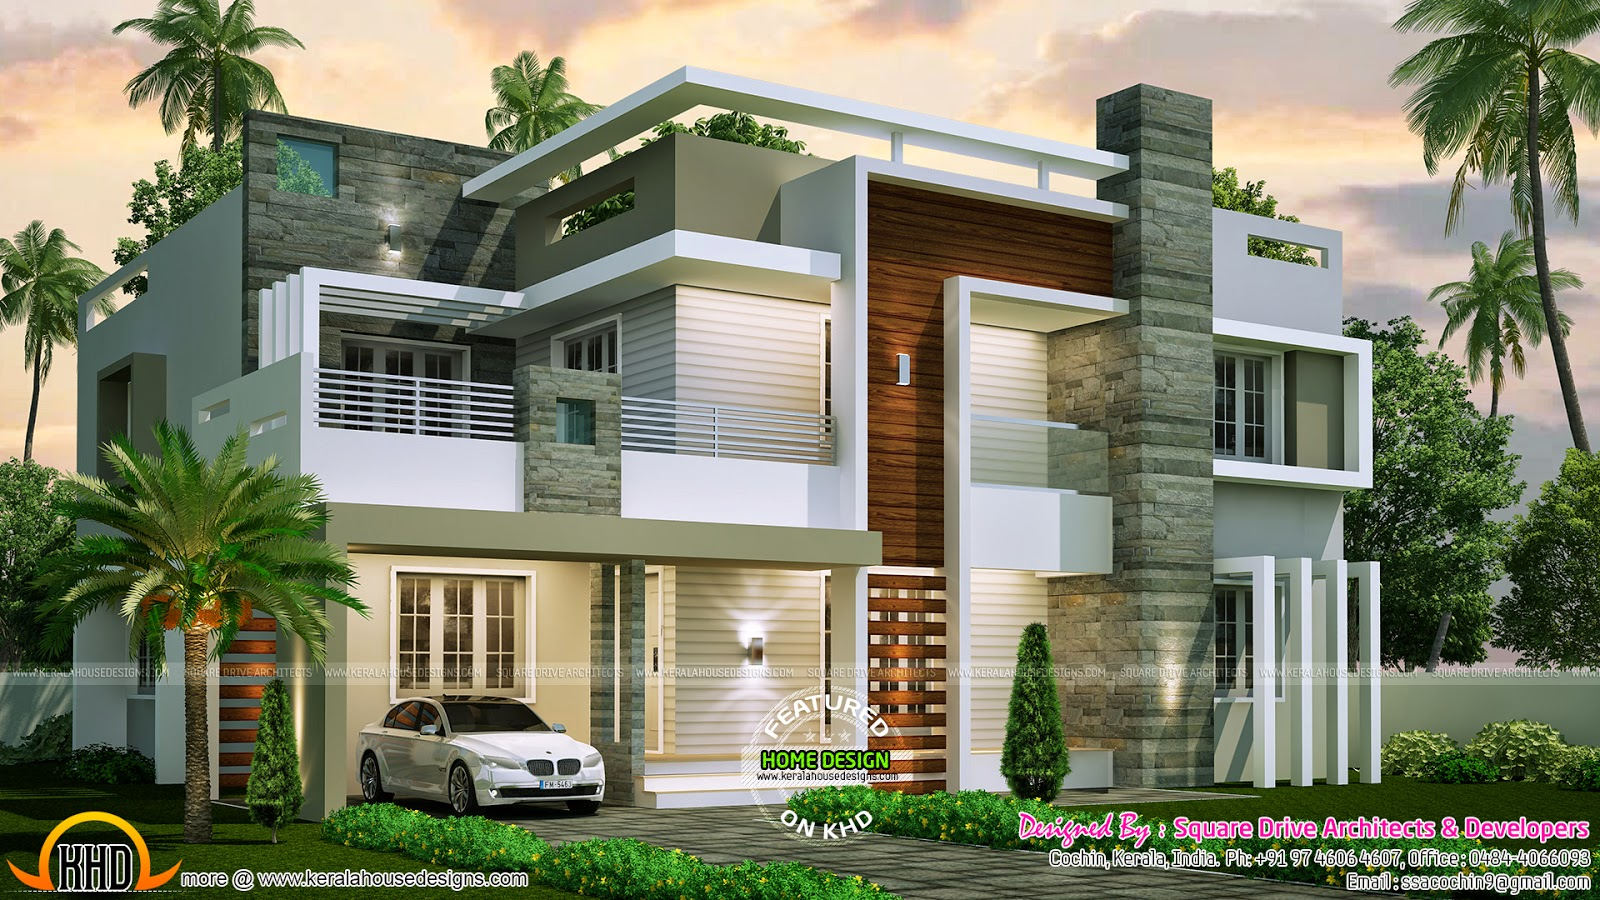 4 bedroom contemporary home design kerala home design and floor plans - Modern house designs ...